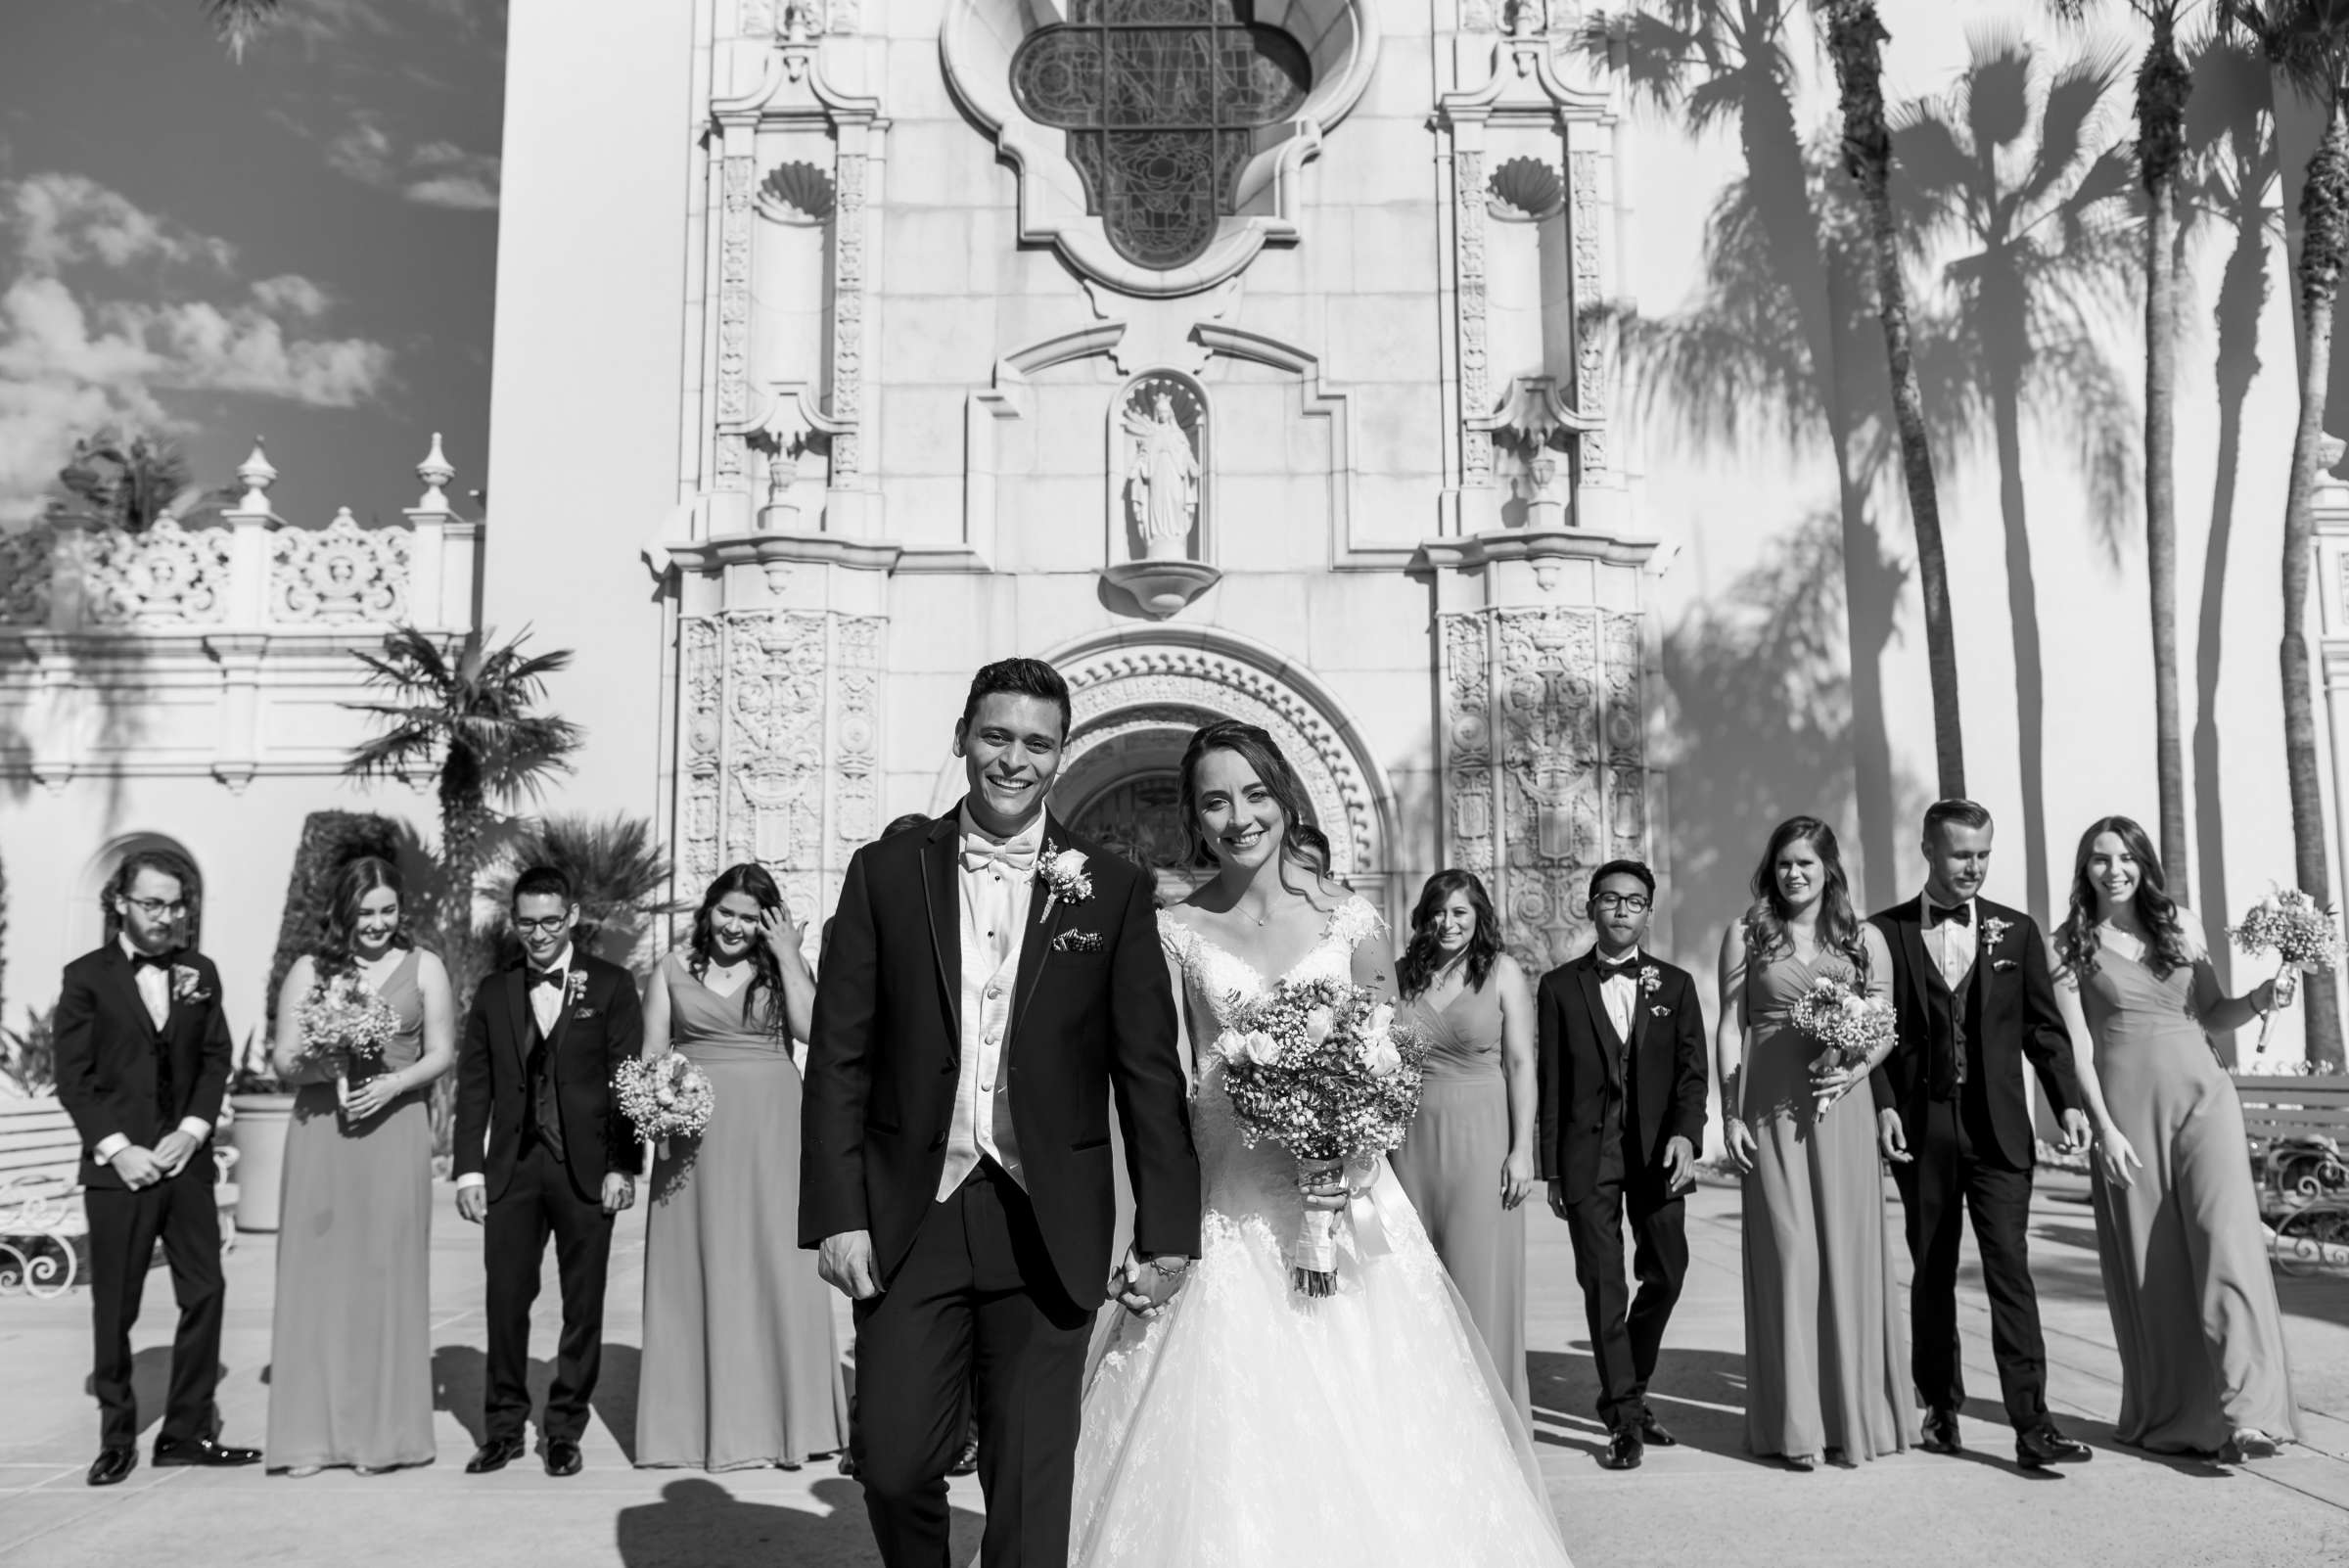 The Immaculata Wedding, Arianna and Jonah Wedding Photo #74 by True Photography